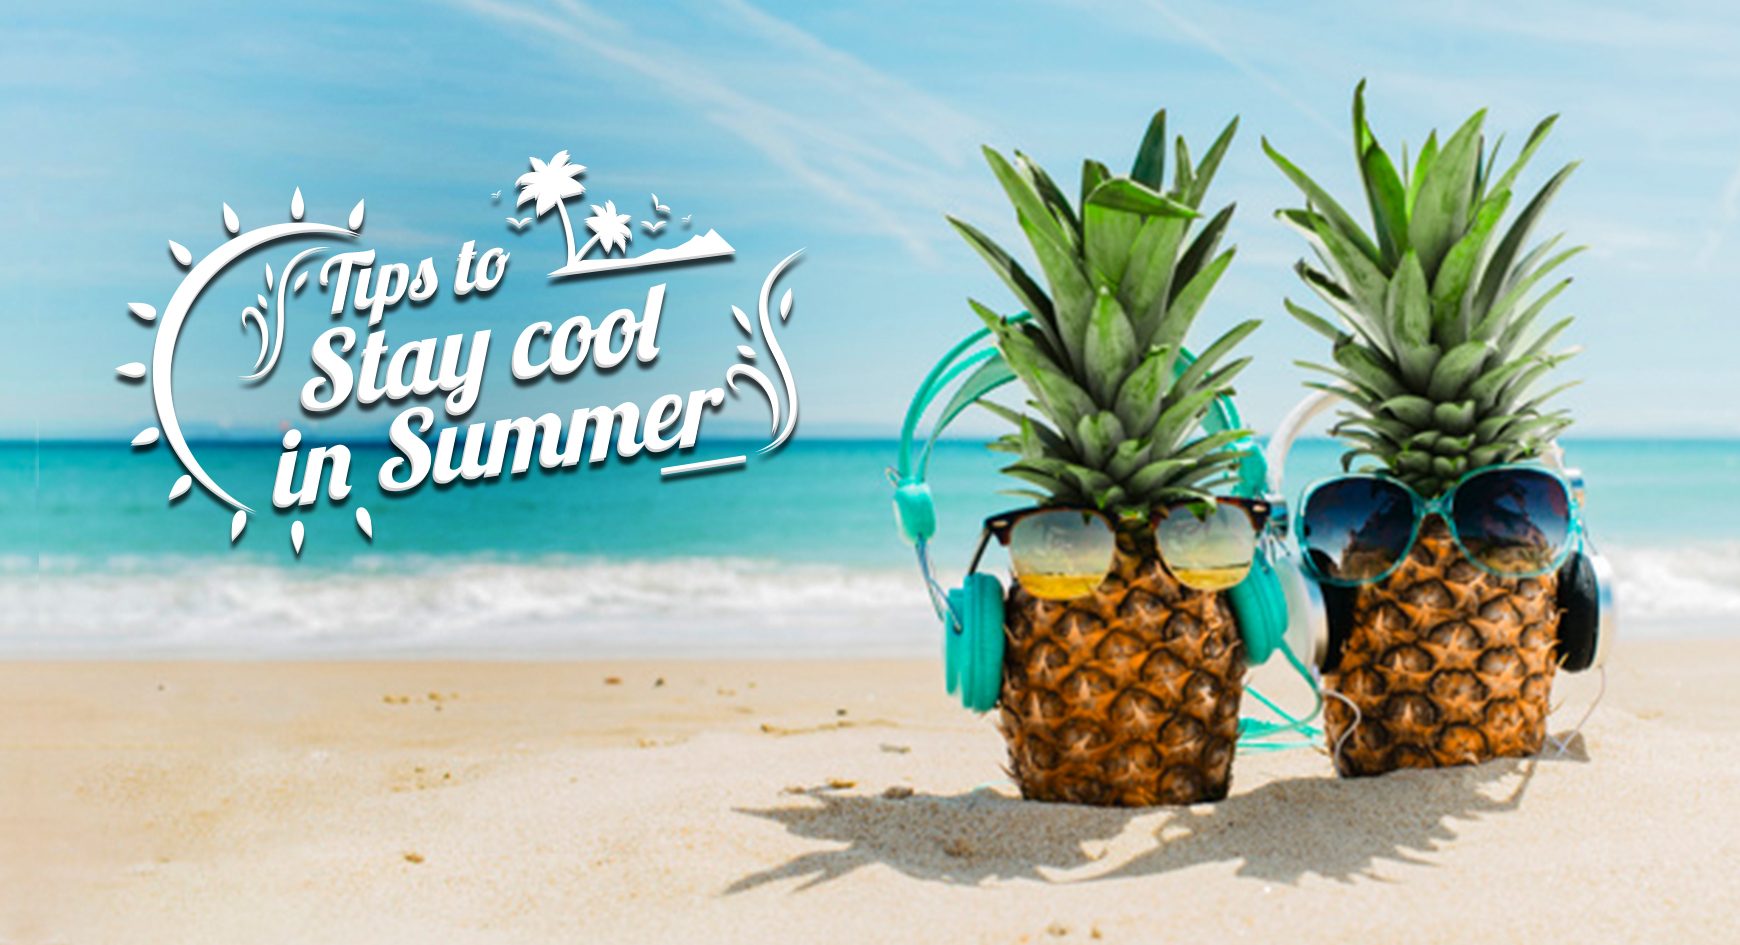 Tips to Stay Cool in Summers